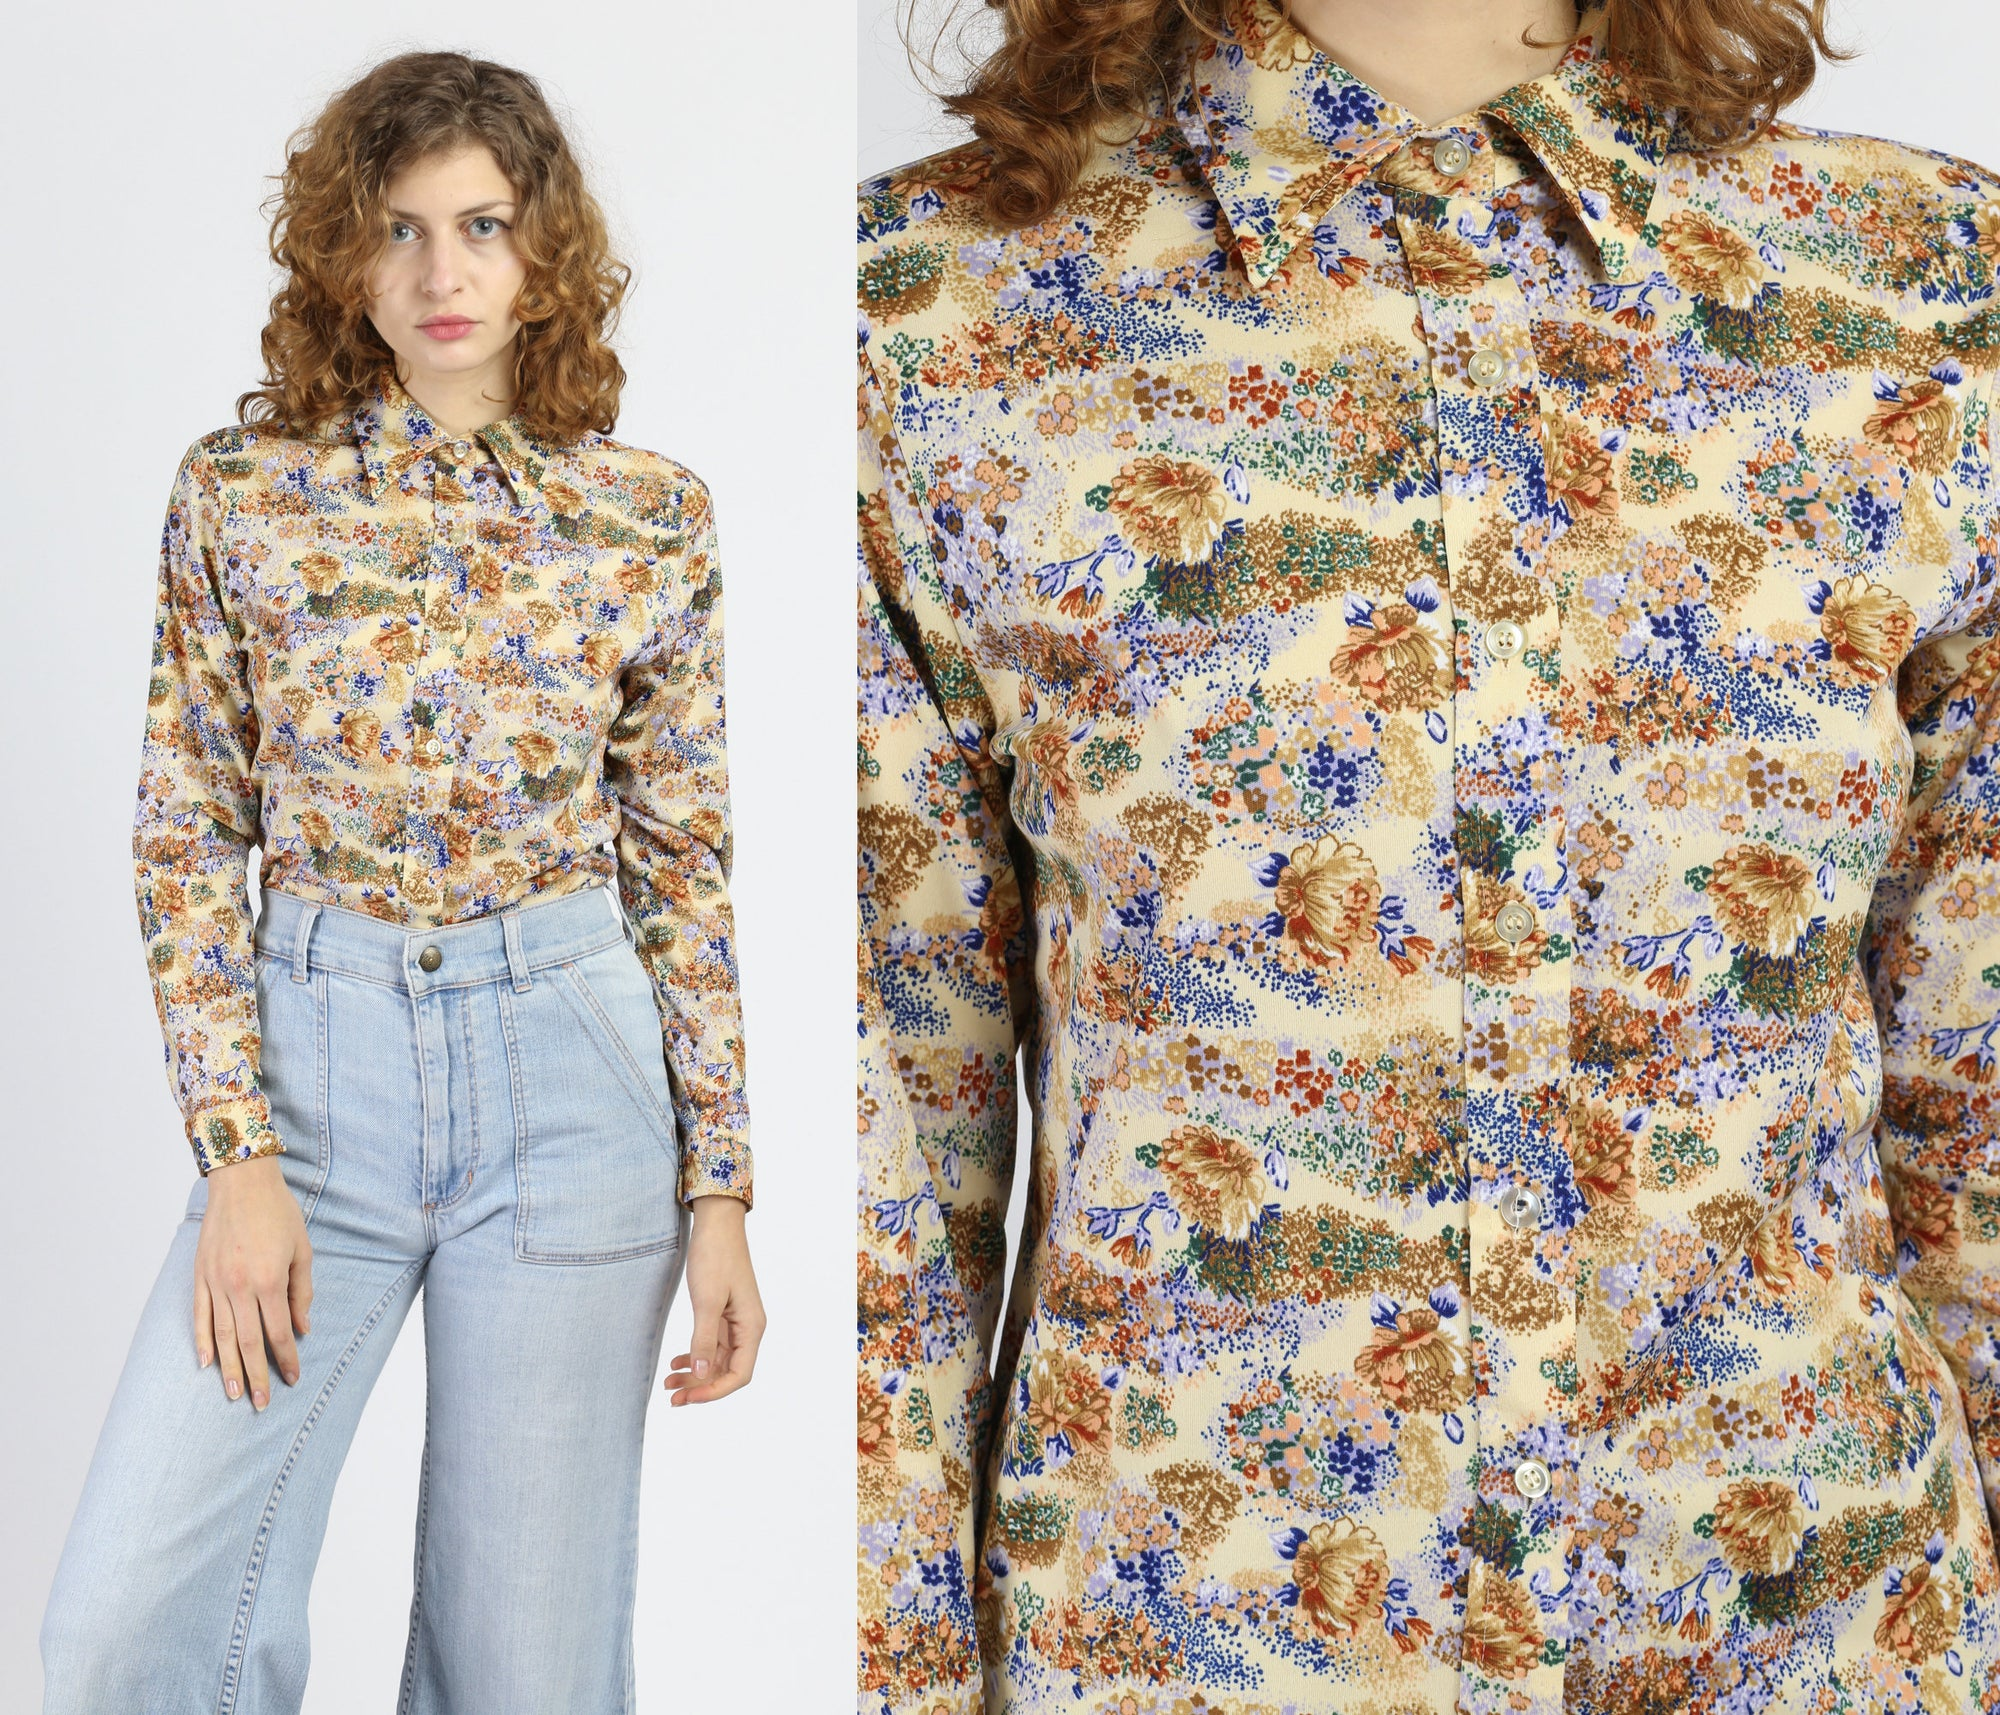 70s Boho Floral Button Up Top - Small